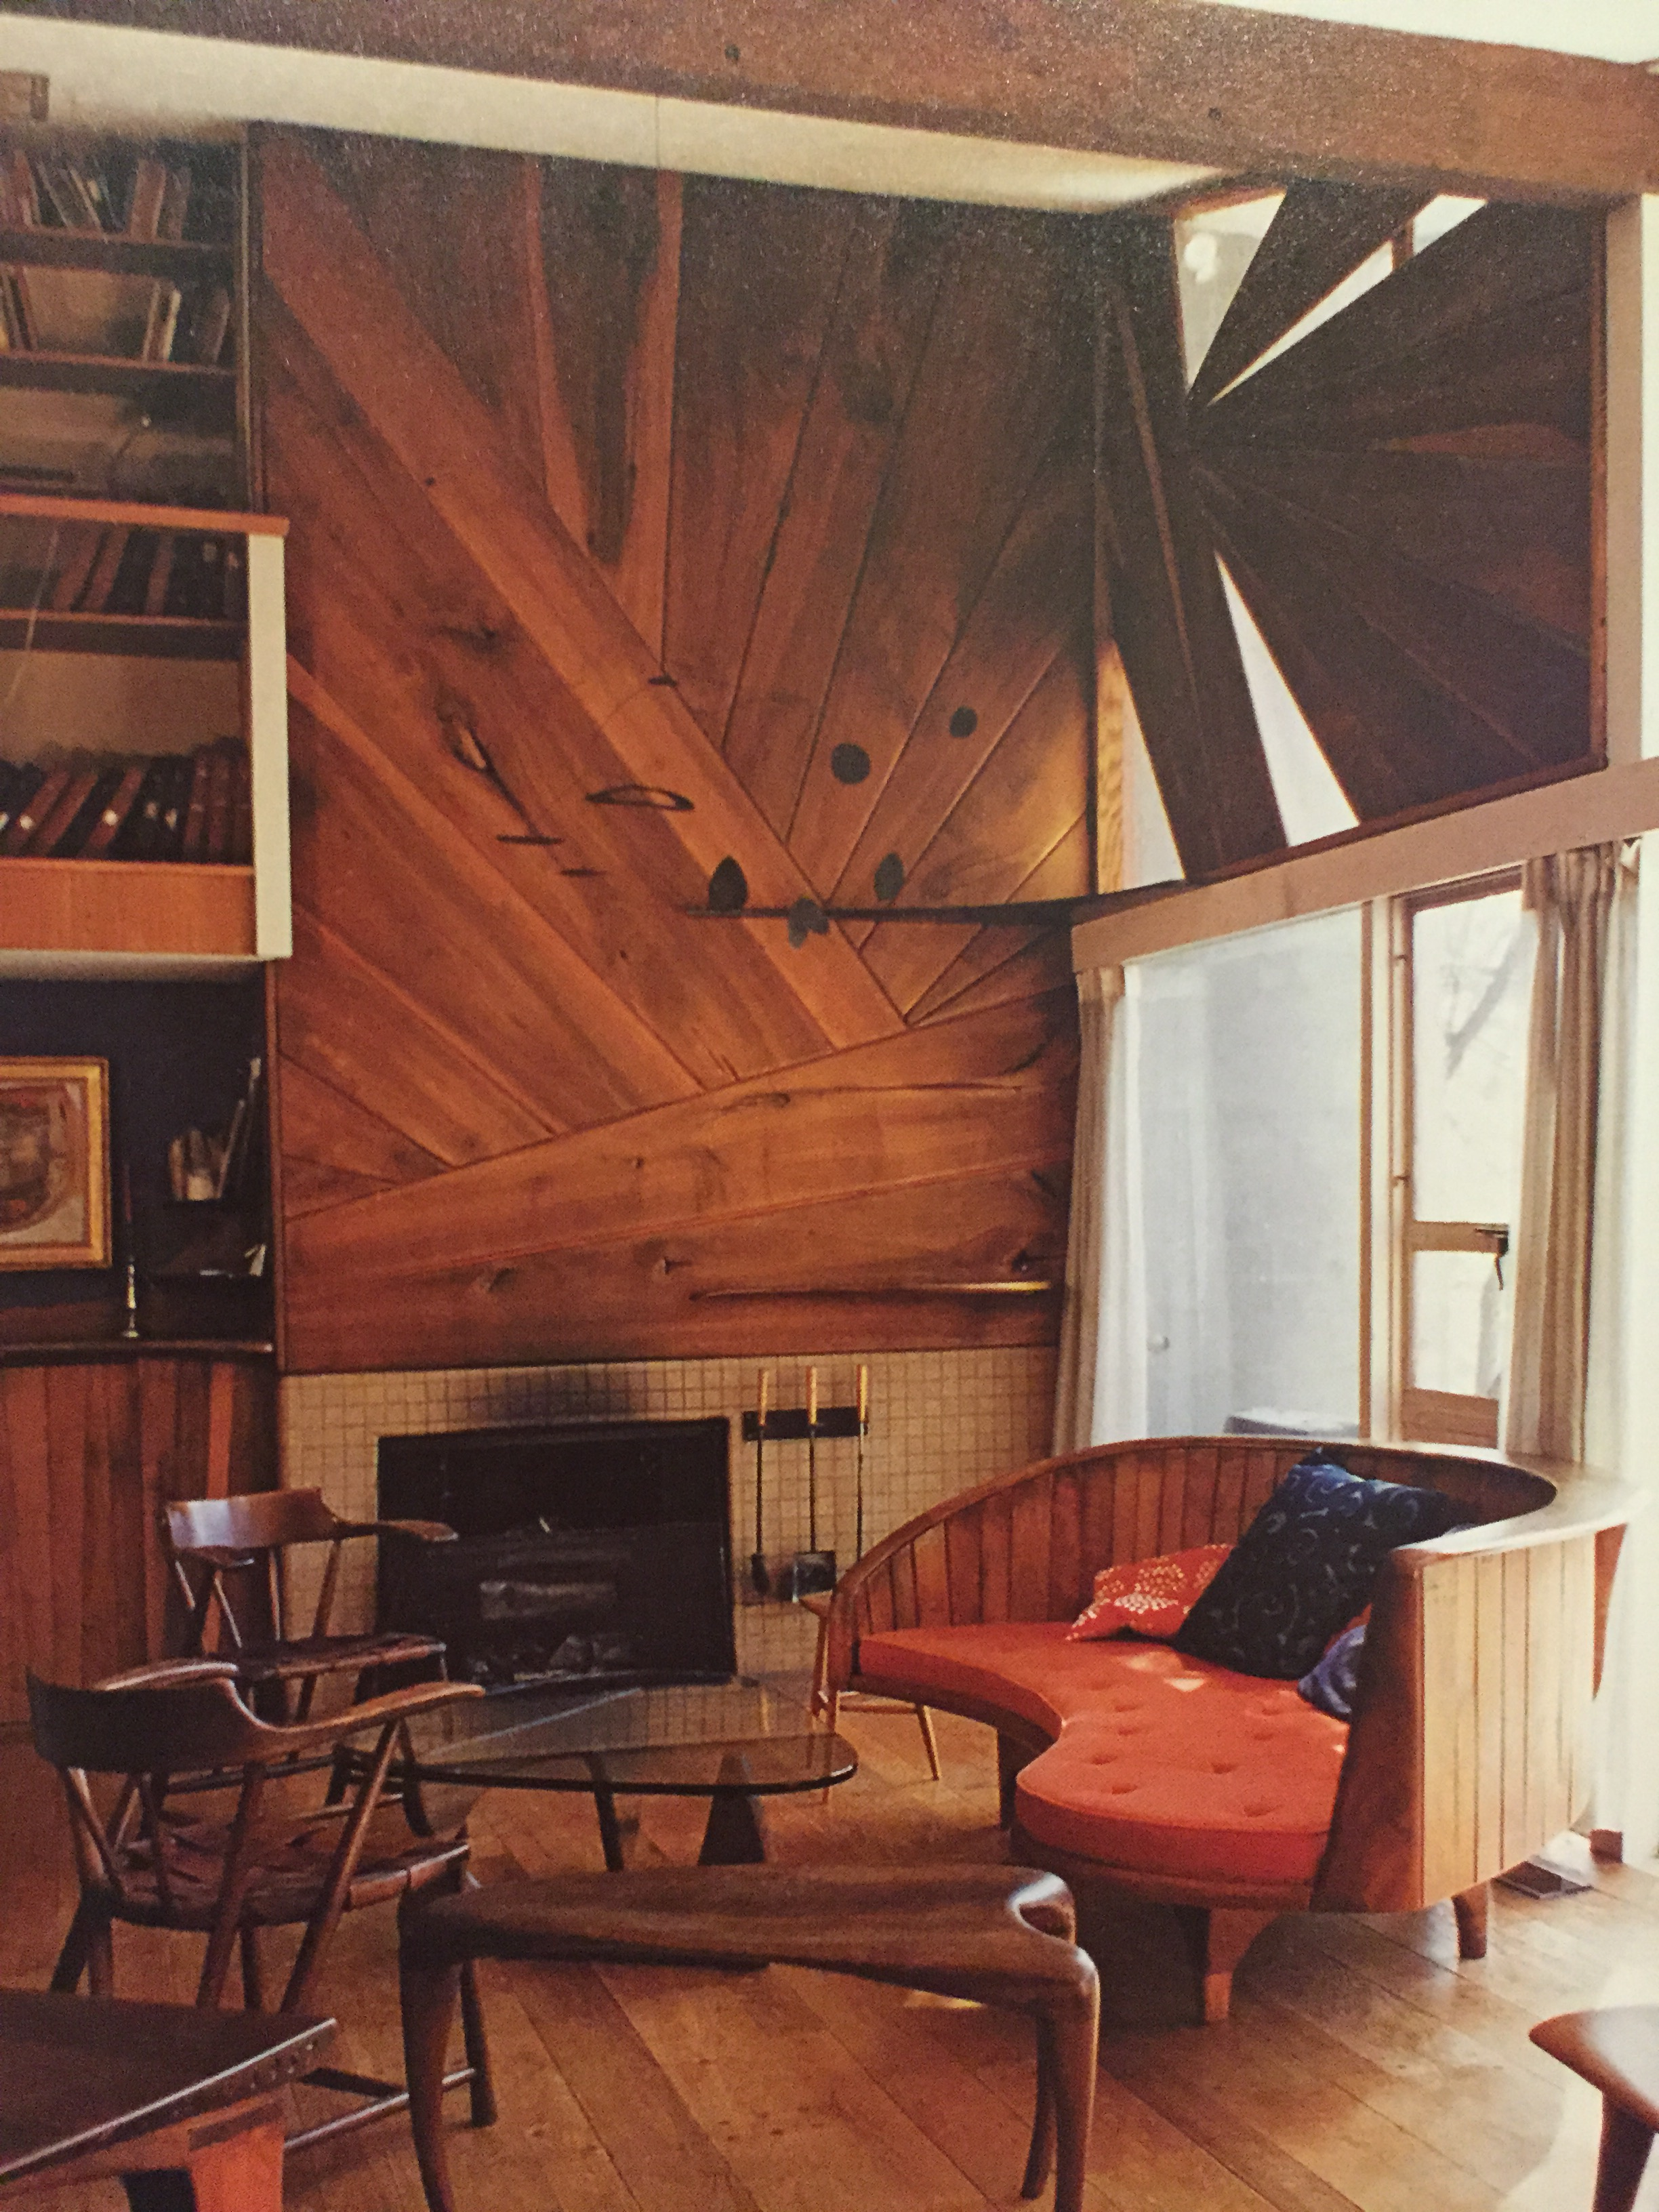 Chairs, table in foreground, sofa and wood paneling/sidingby W. Esherick.